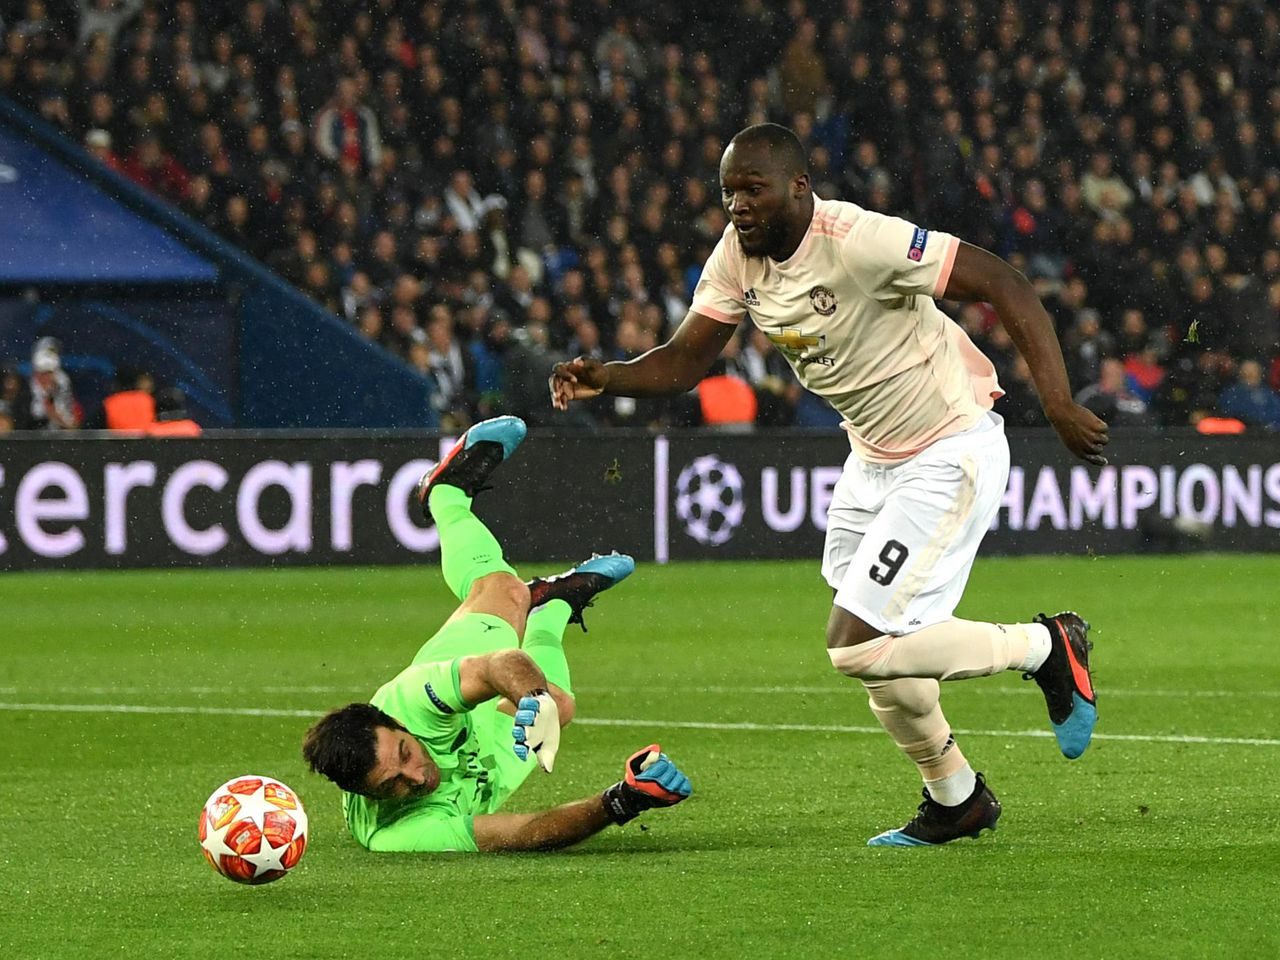 psg 1 manchester united 3 champions league match report manchester united https www manutd com en news detail match report psg v man united champions league last 16 second leg parc des princes